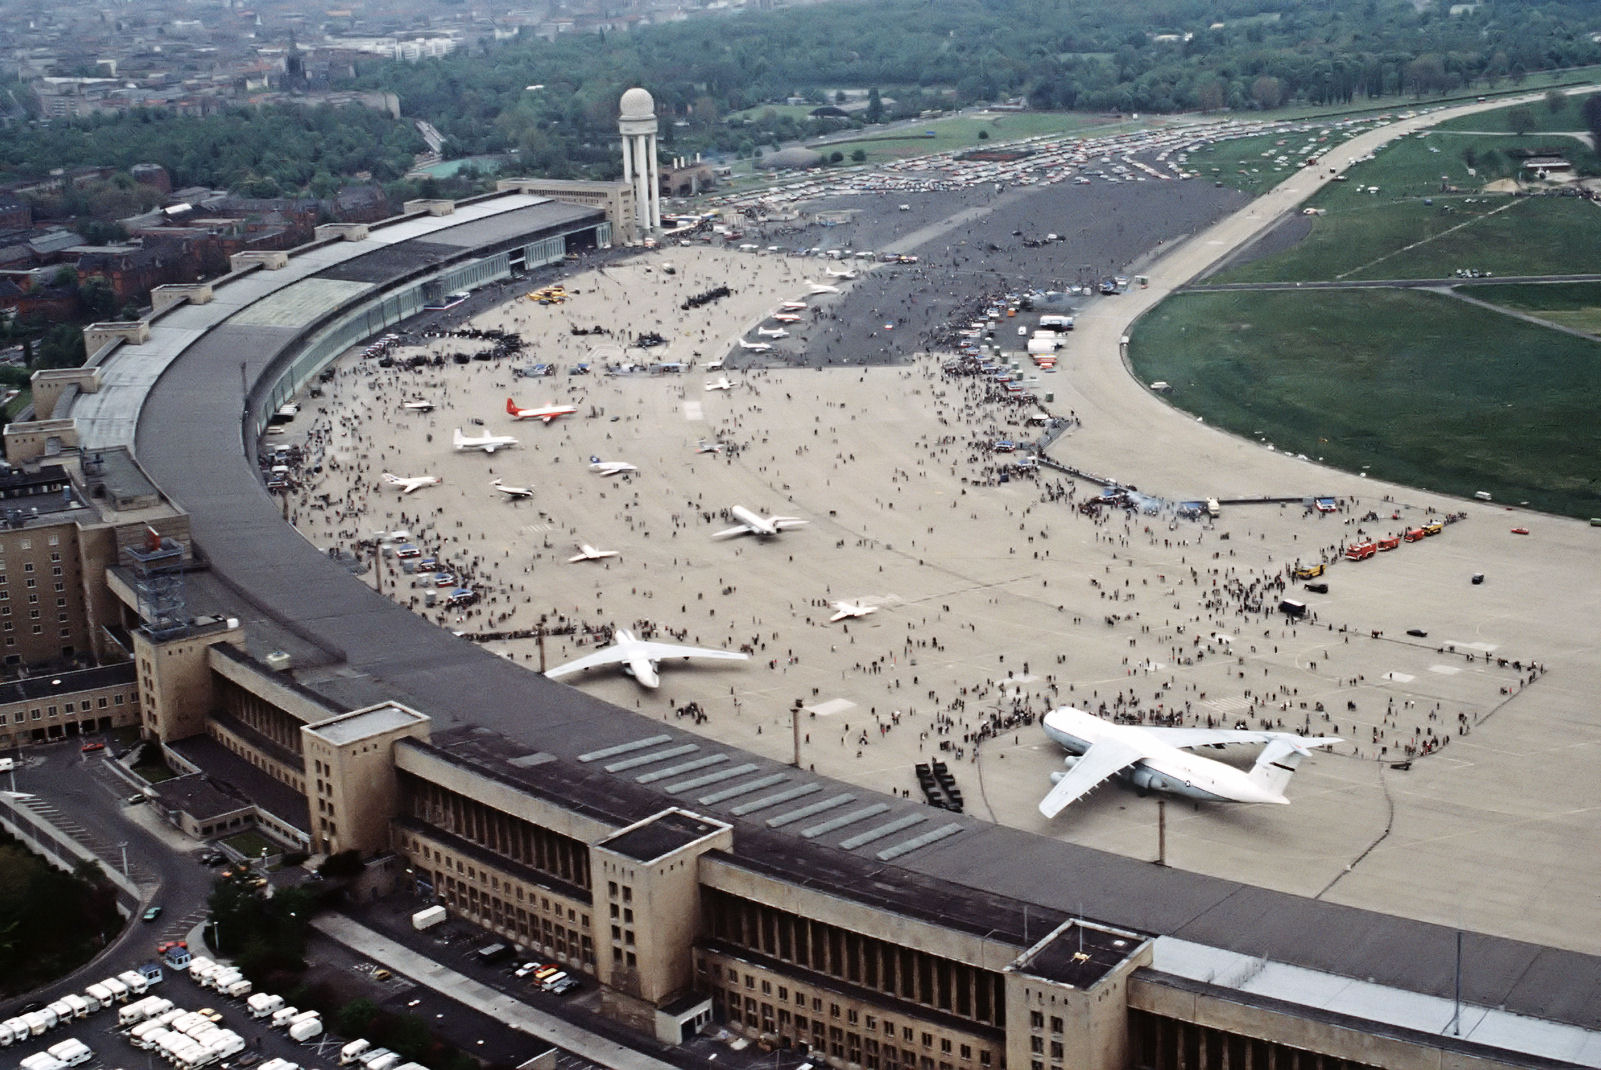 Tempelhof Airport, acres of concrete and tarmac